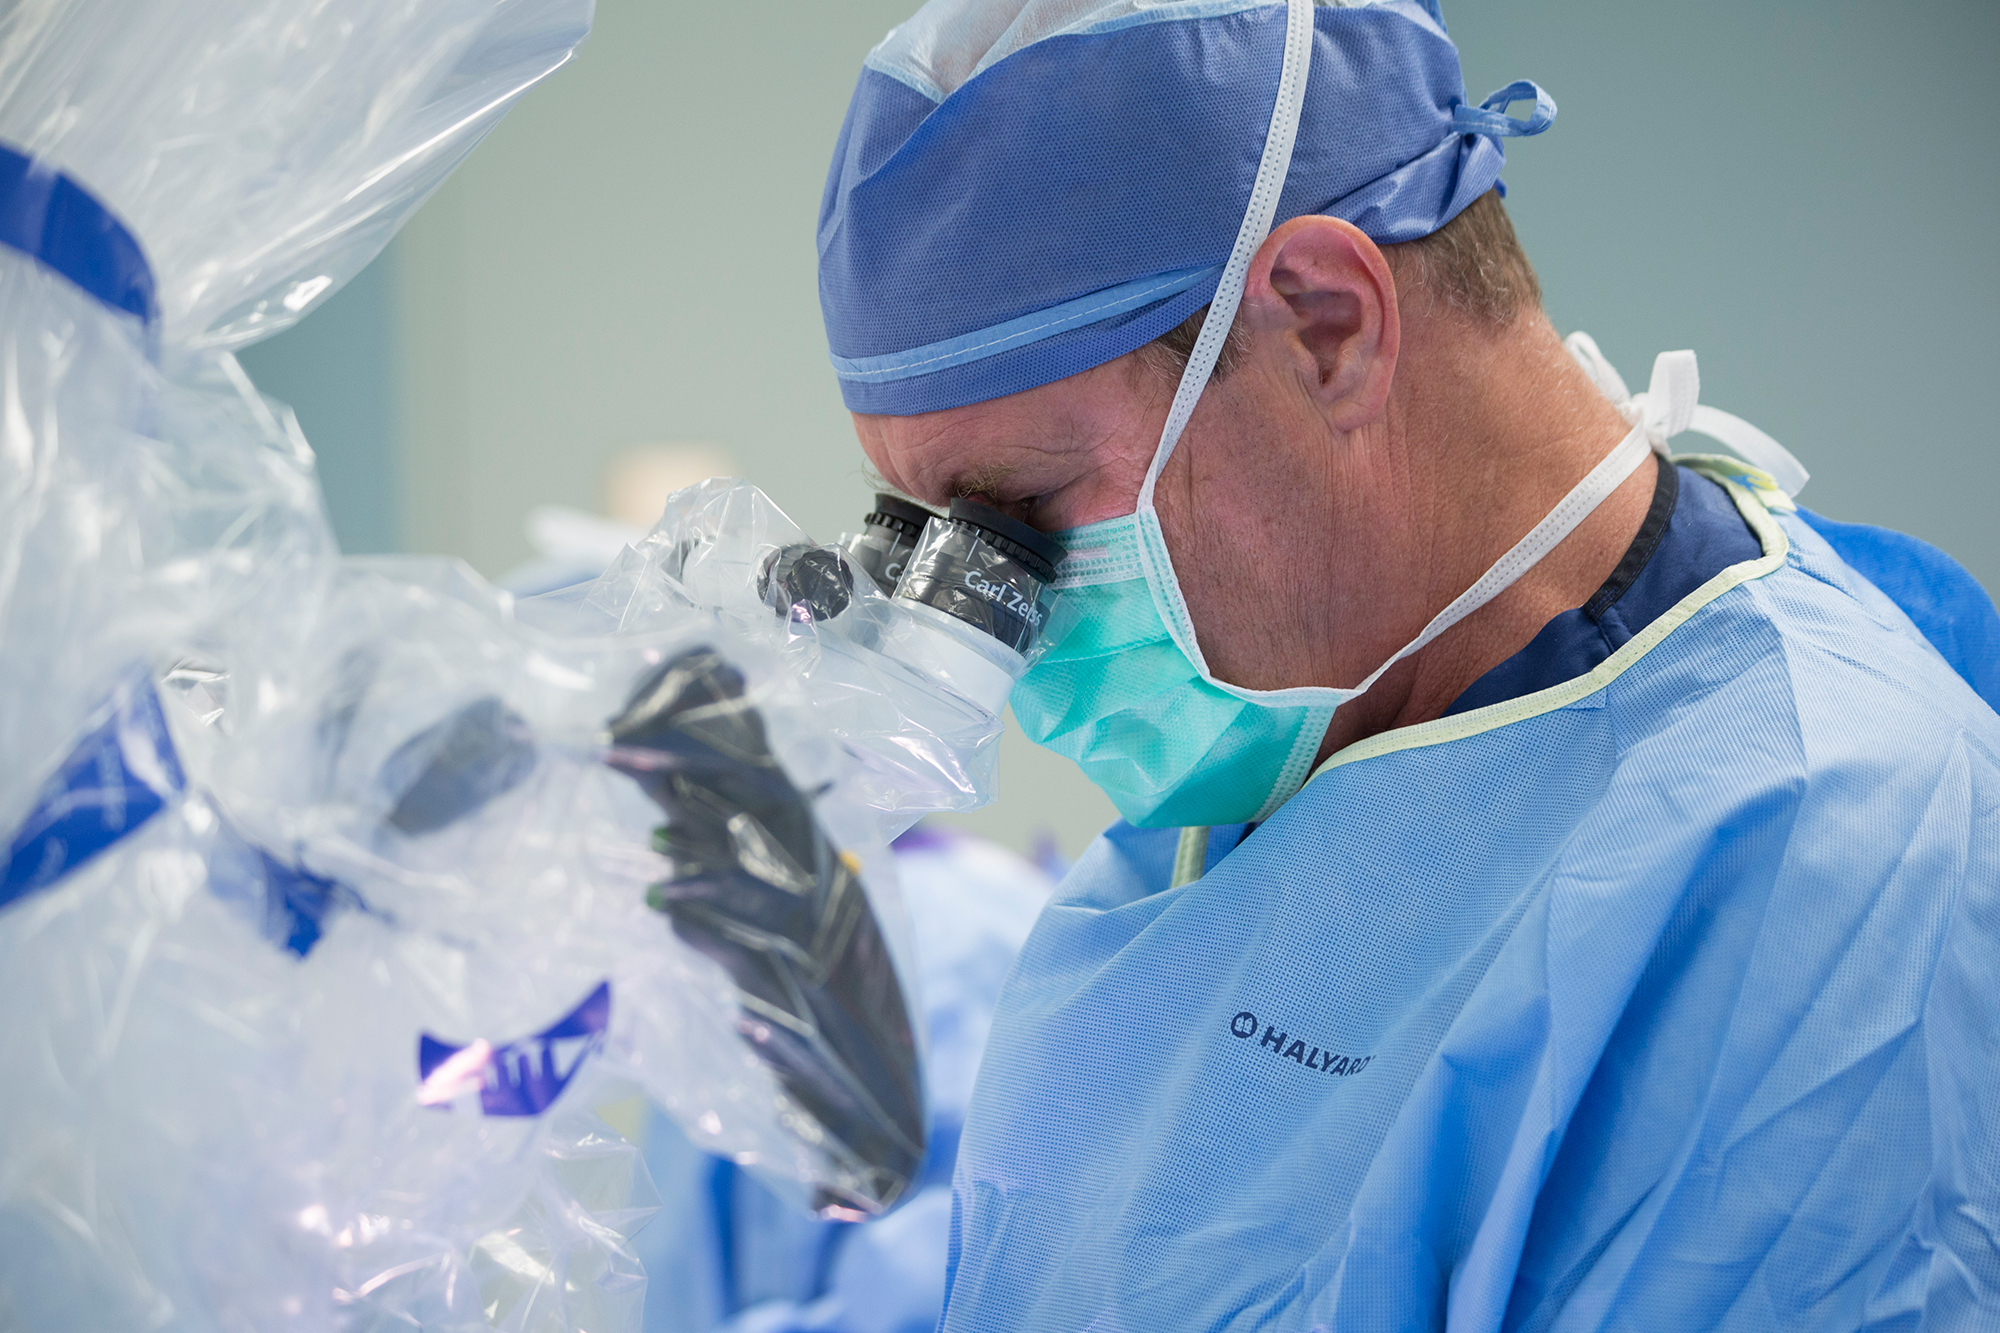 Dr. Bray Operating